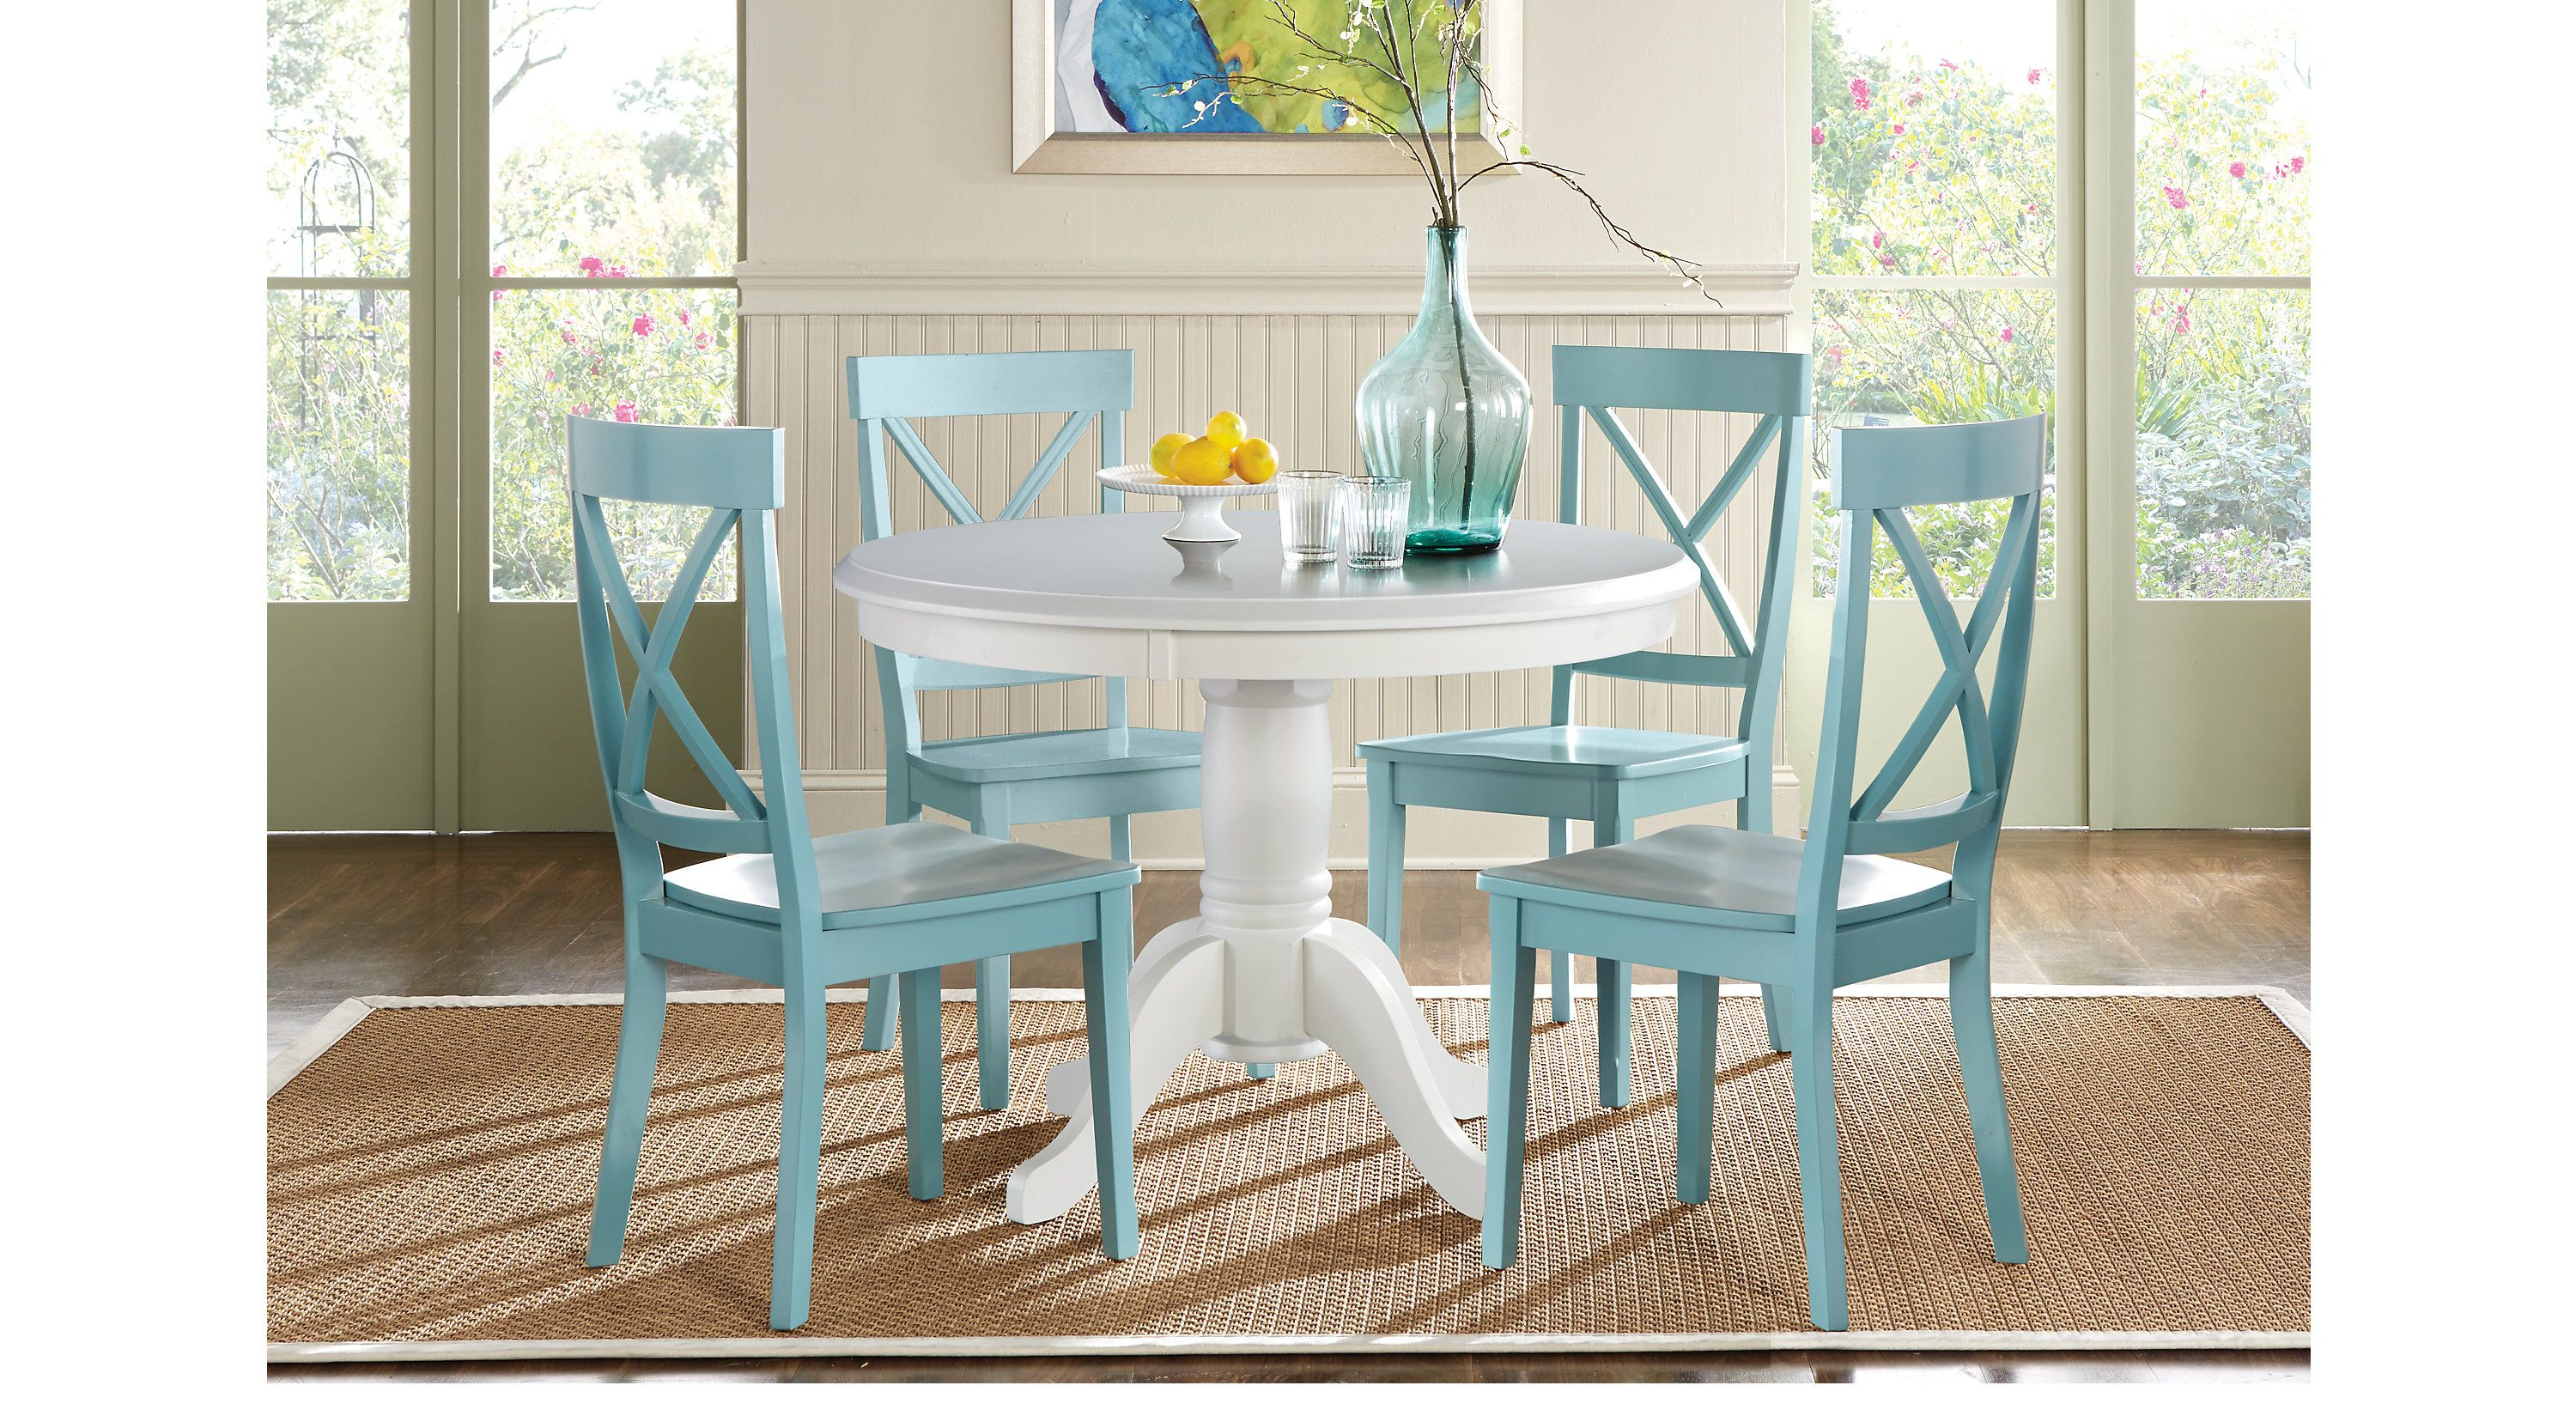 Dining Room Sets Rooms To Go Brynwood White 5 Pc Pedestal Dining Set Blue Chairs 8228218p Dining Room Sets Round Dining Set Dining Room Table